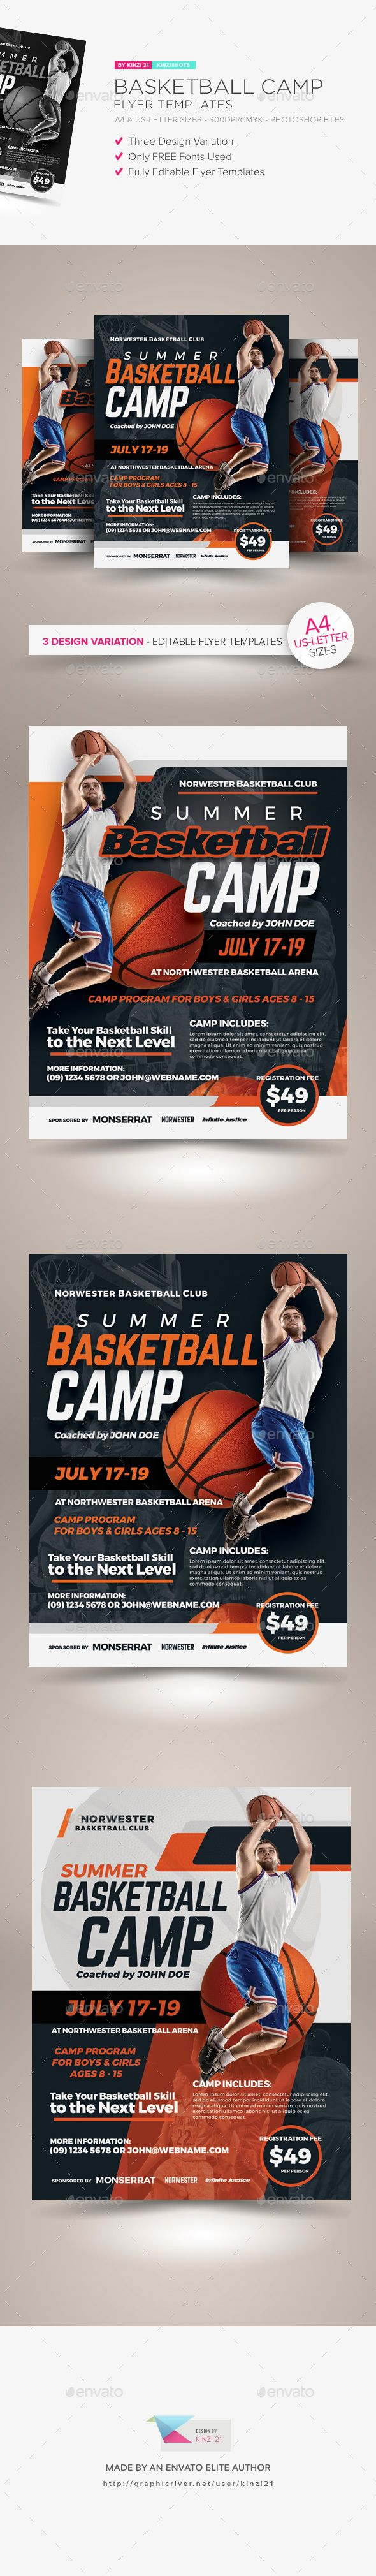 basketball camp flyer templates flyer template psd game camp